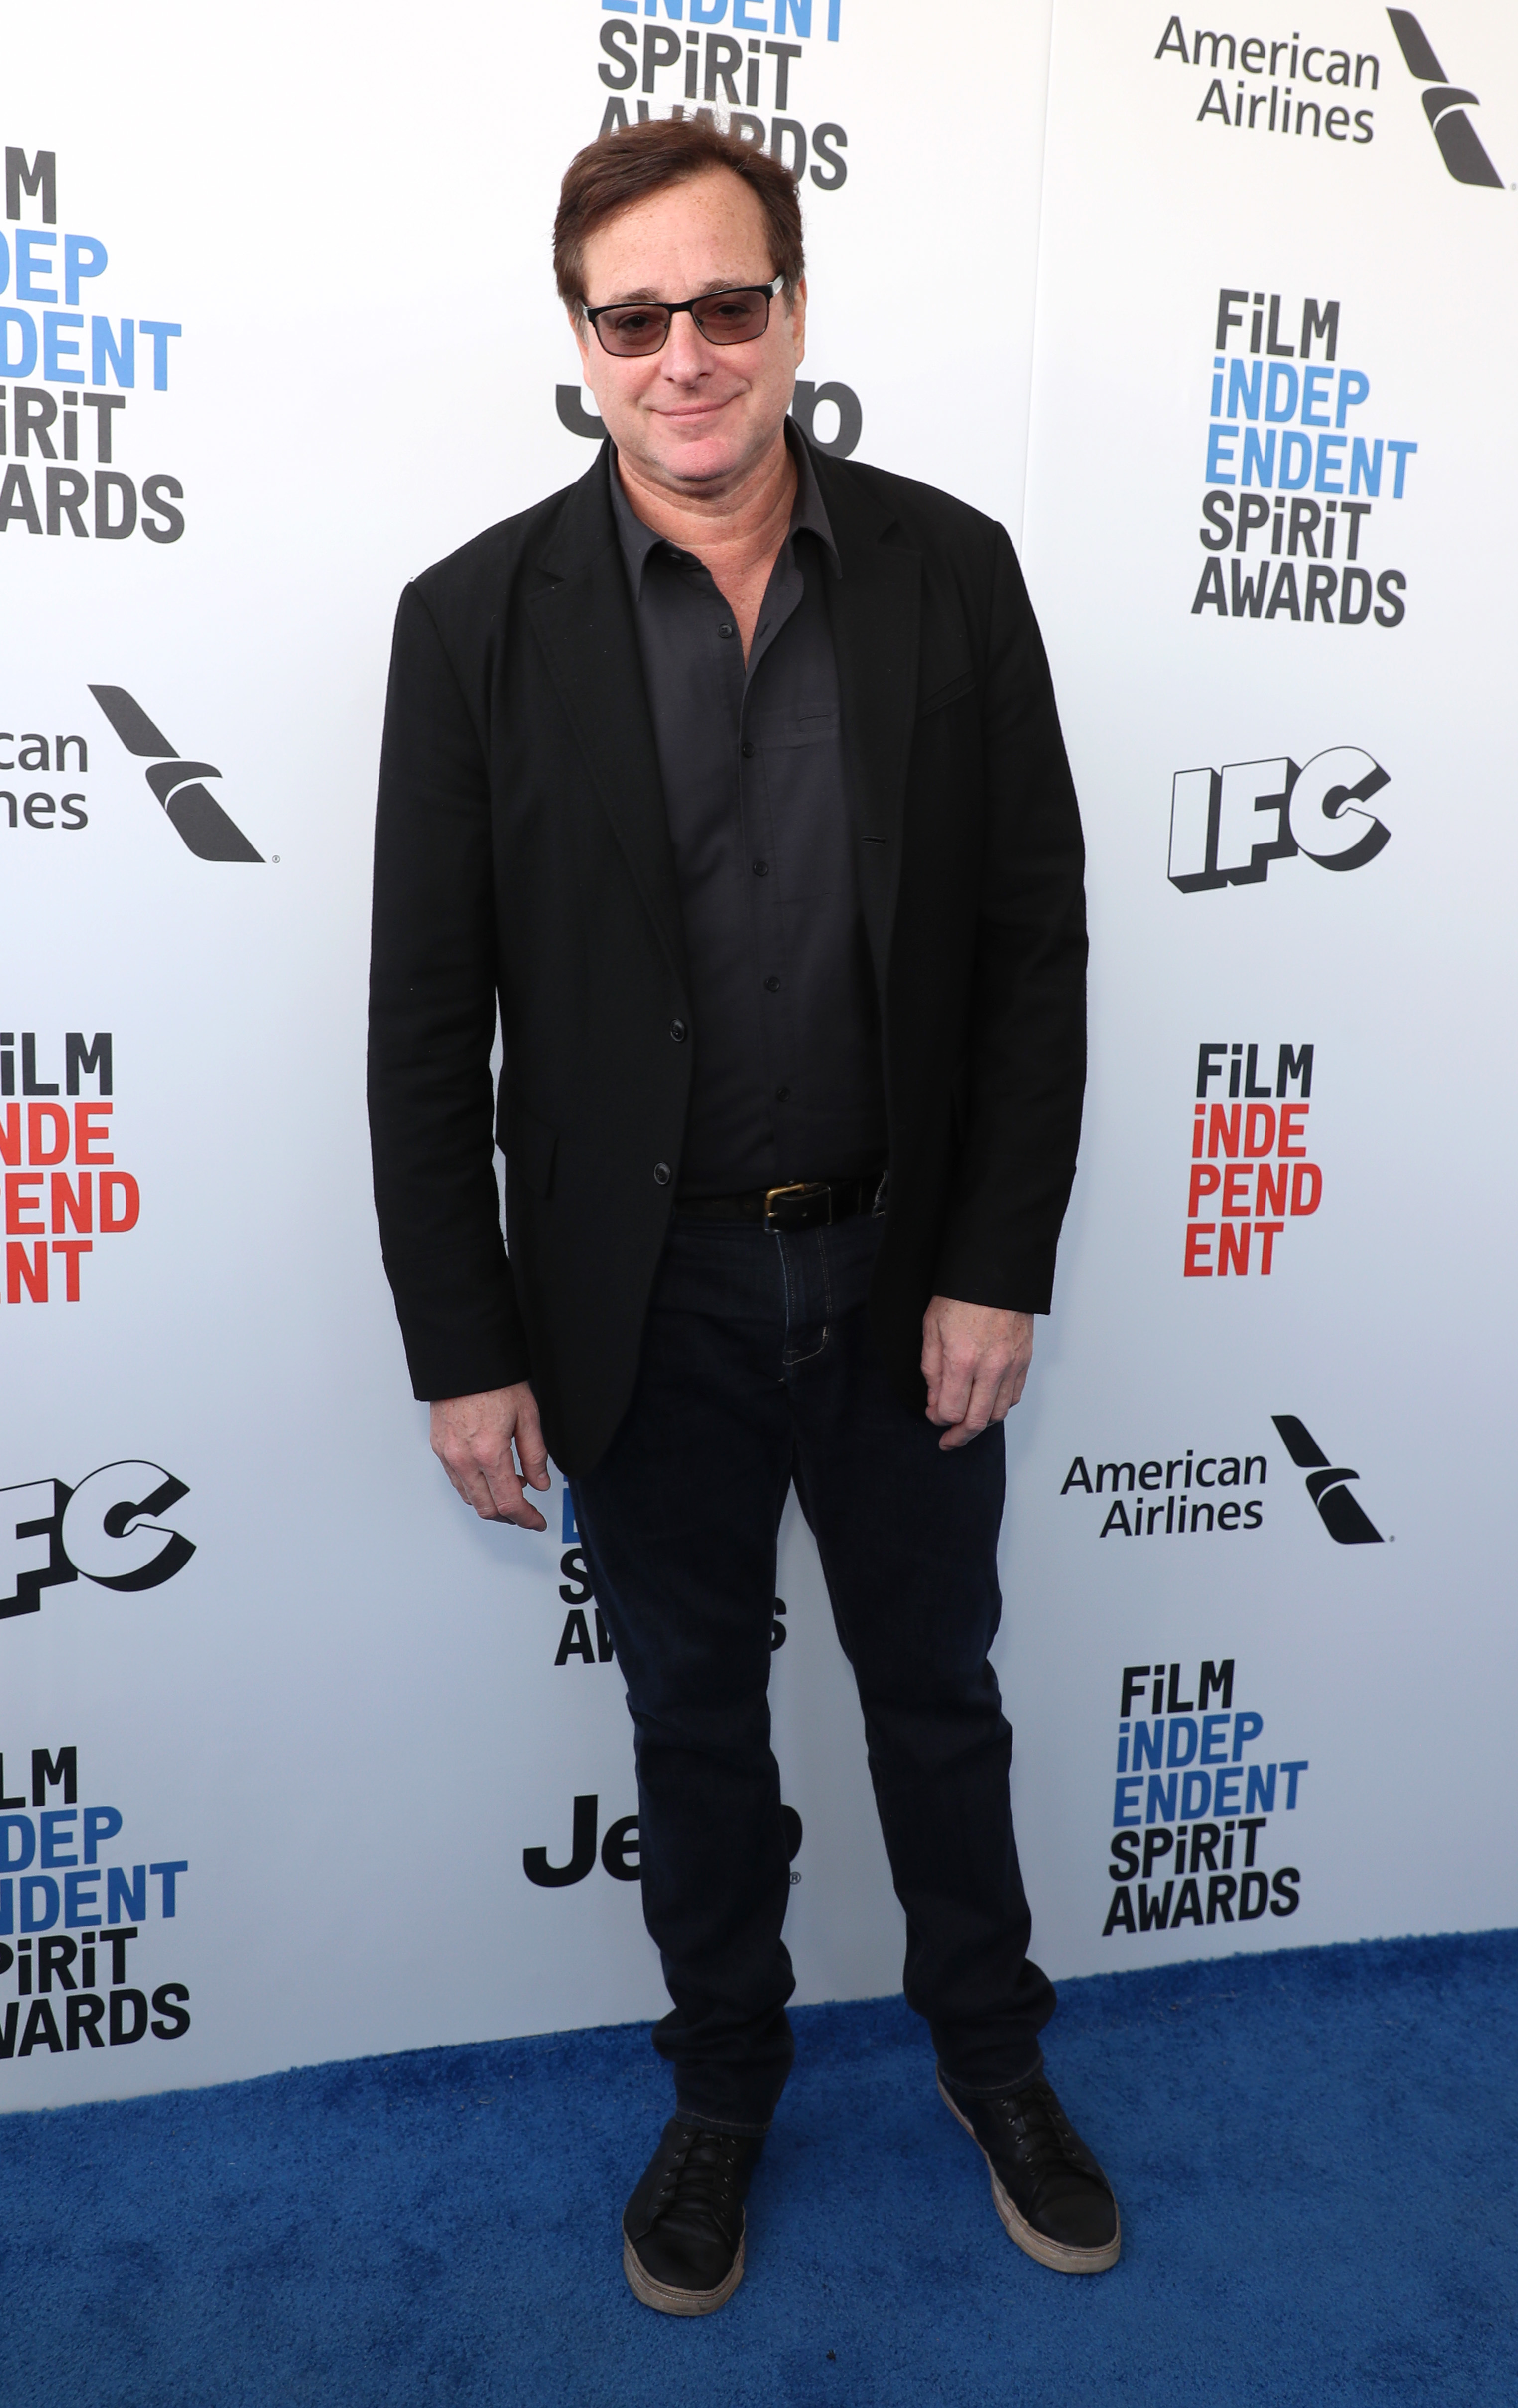 Bob Saget attends the 32nd Film Independent Spirit Awards in Los Angeles on Feb. 25, 2017.